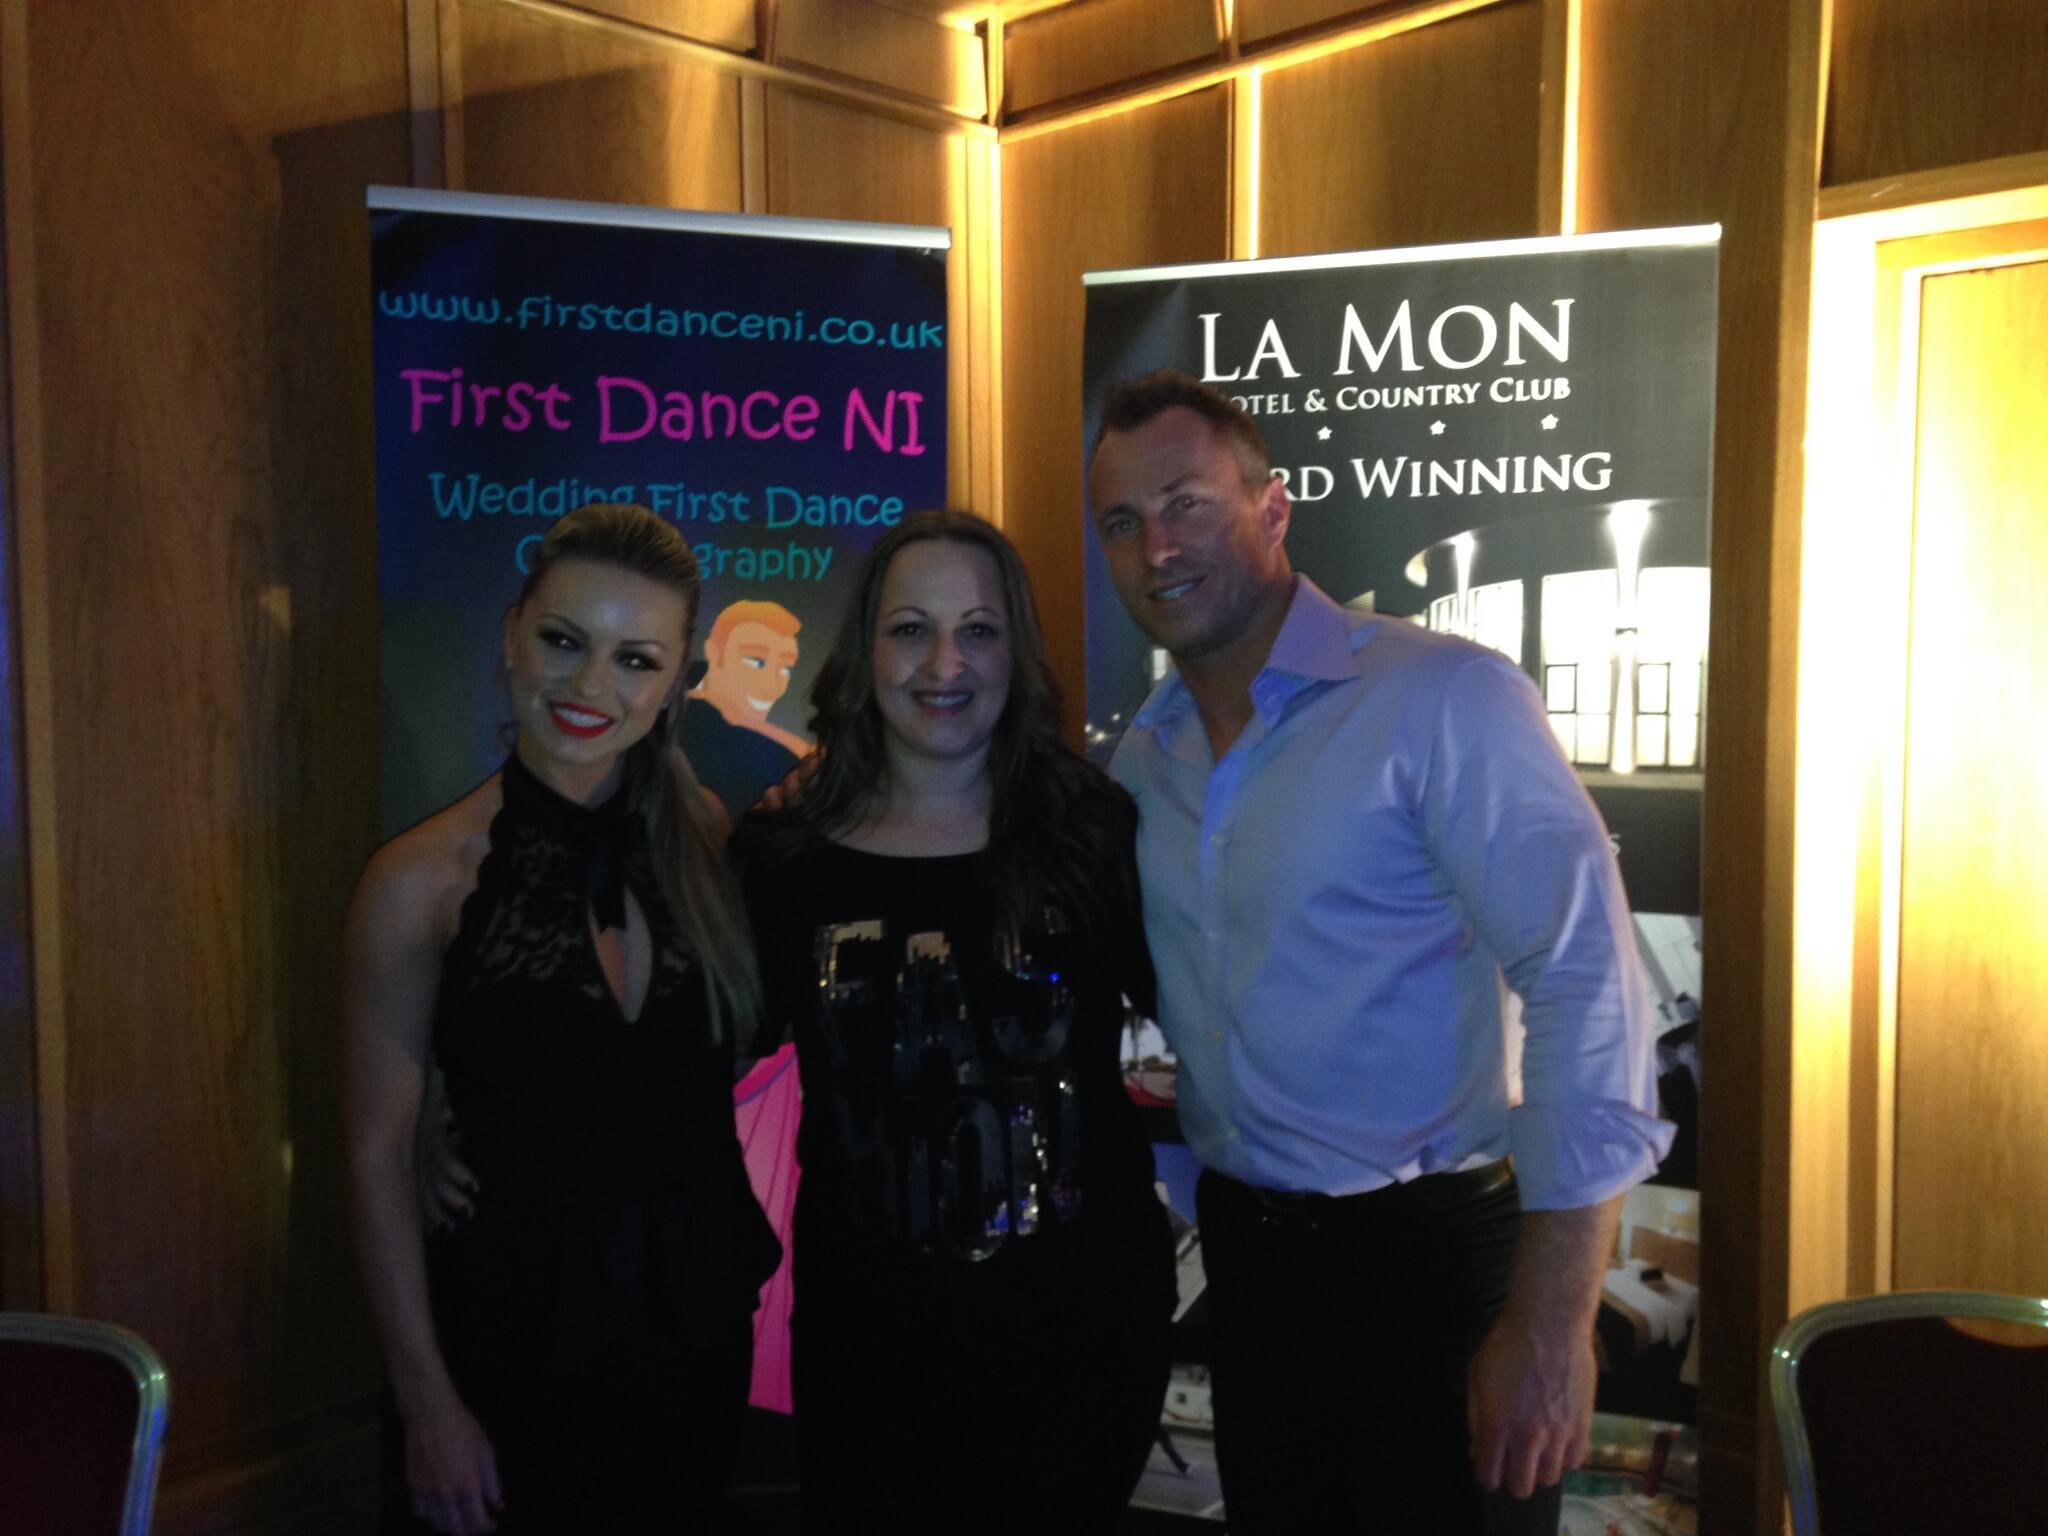 RT @leighbsweeney: Had an amazing evening with @The_JamesJordan and @The_OlaJordan. Stunning dancers and just lovely people. x http://t.co/…